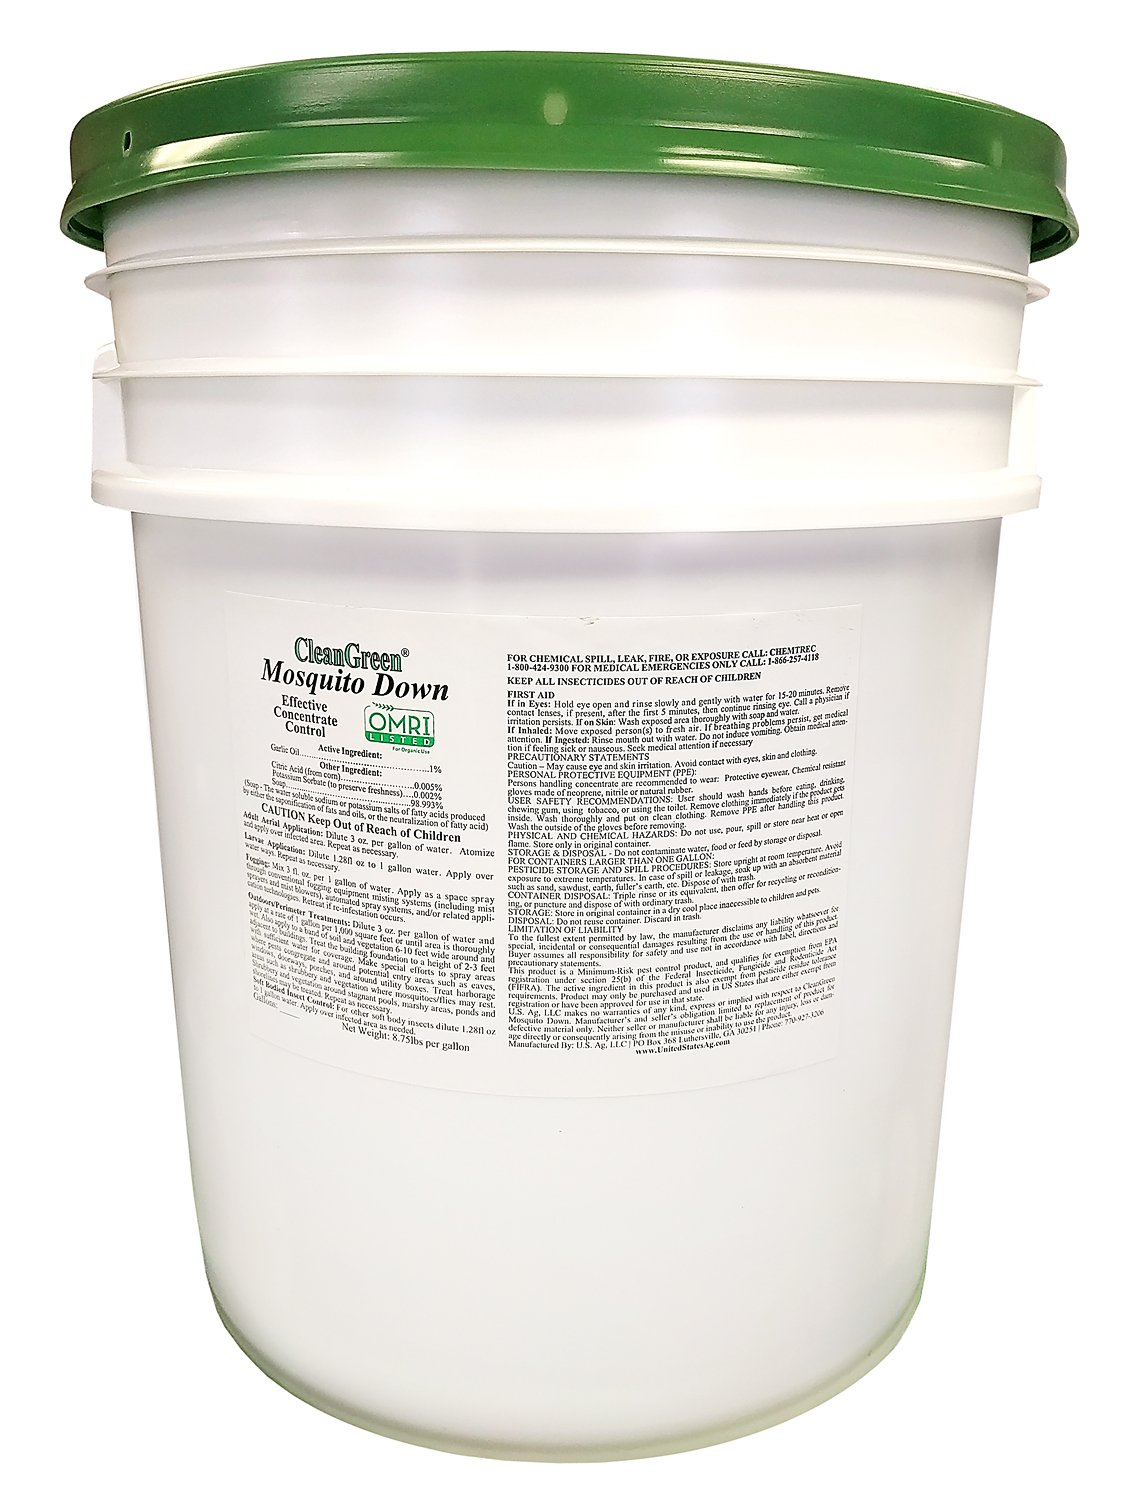 CleanGreen Mosquito Down Pesticide Concentrate Pail, 640 oz/5 gallon